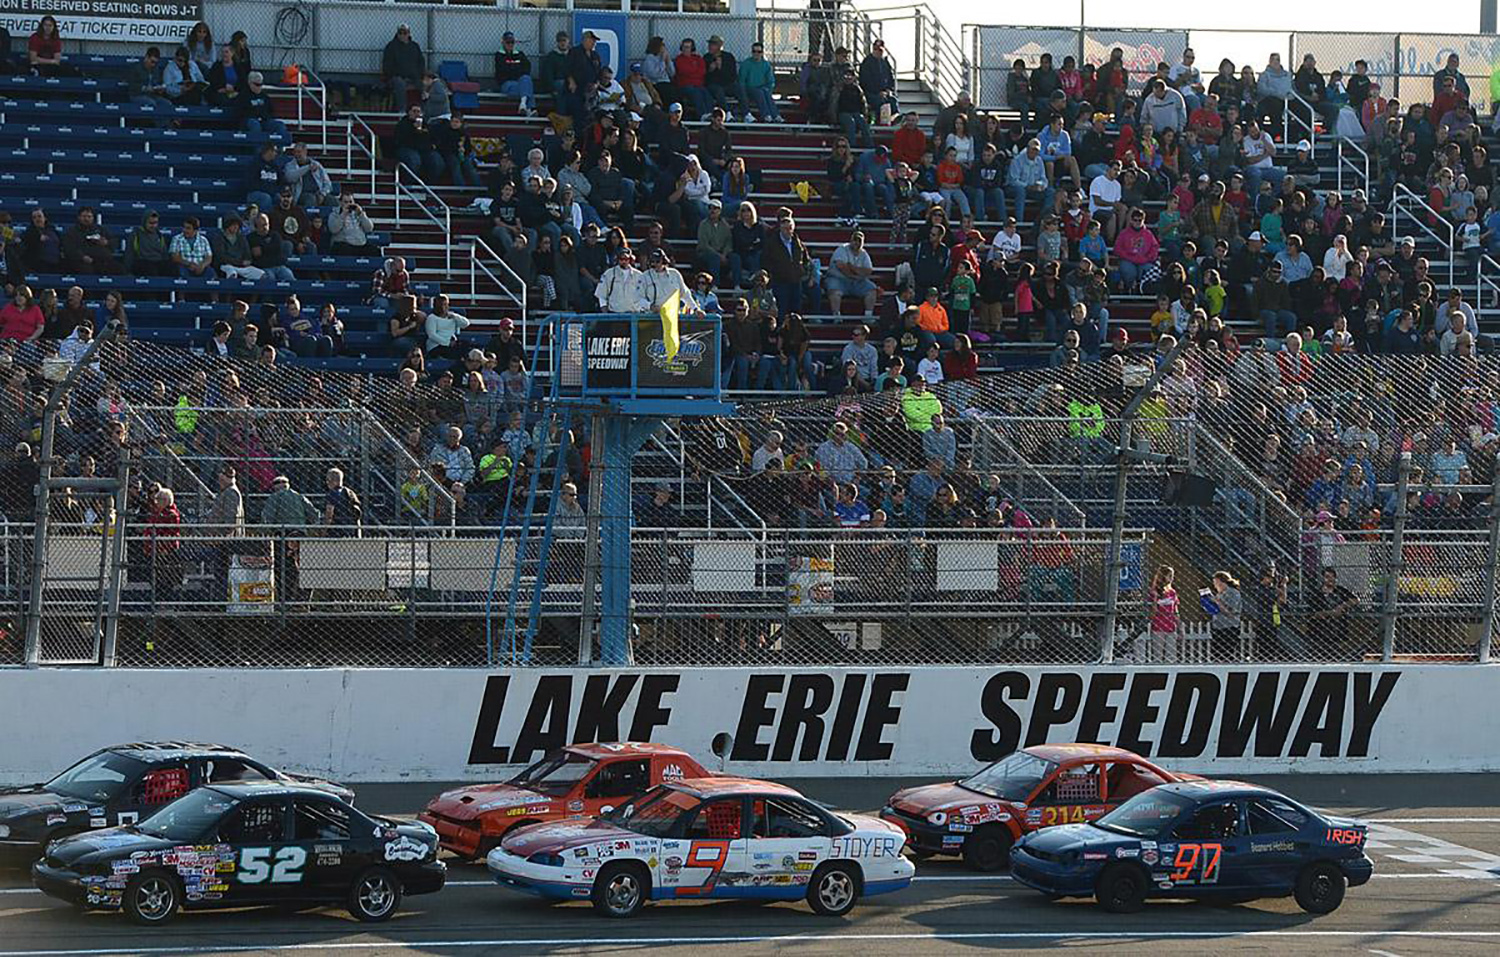 cars racing on the speedway at Lake Erie Speedway